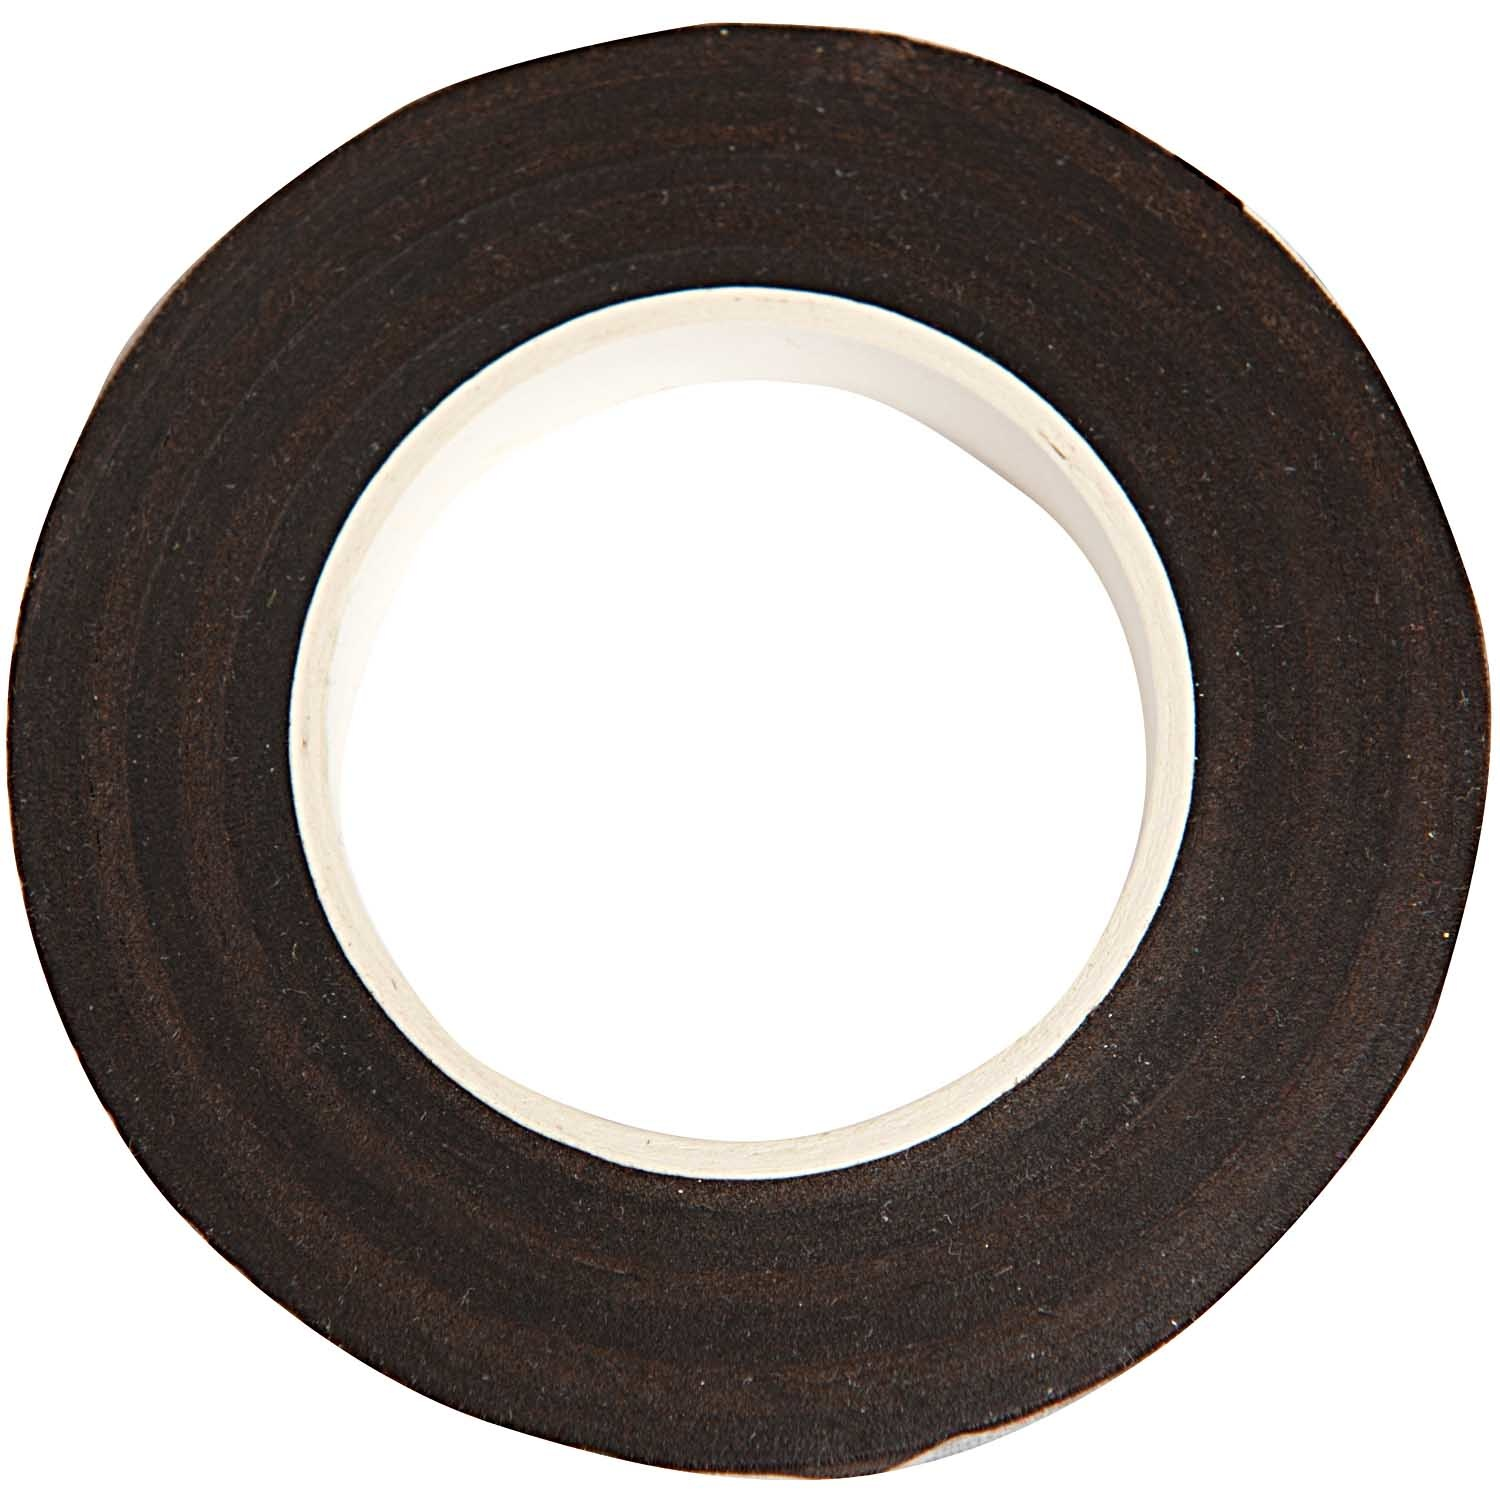 Rico NAY FLORAL CREPE TAPE, BROWN 12 MM X 27,5 M